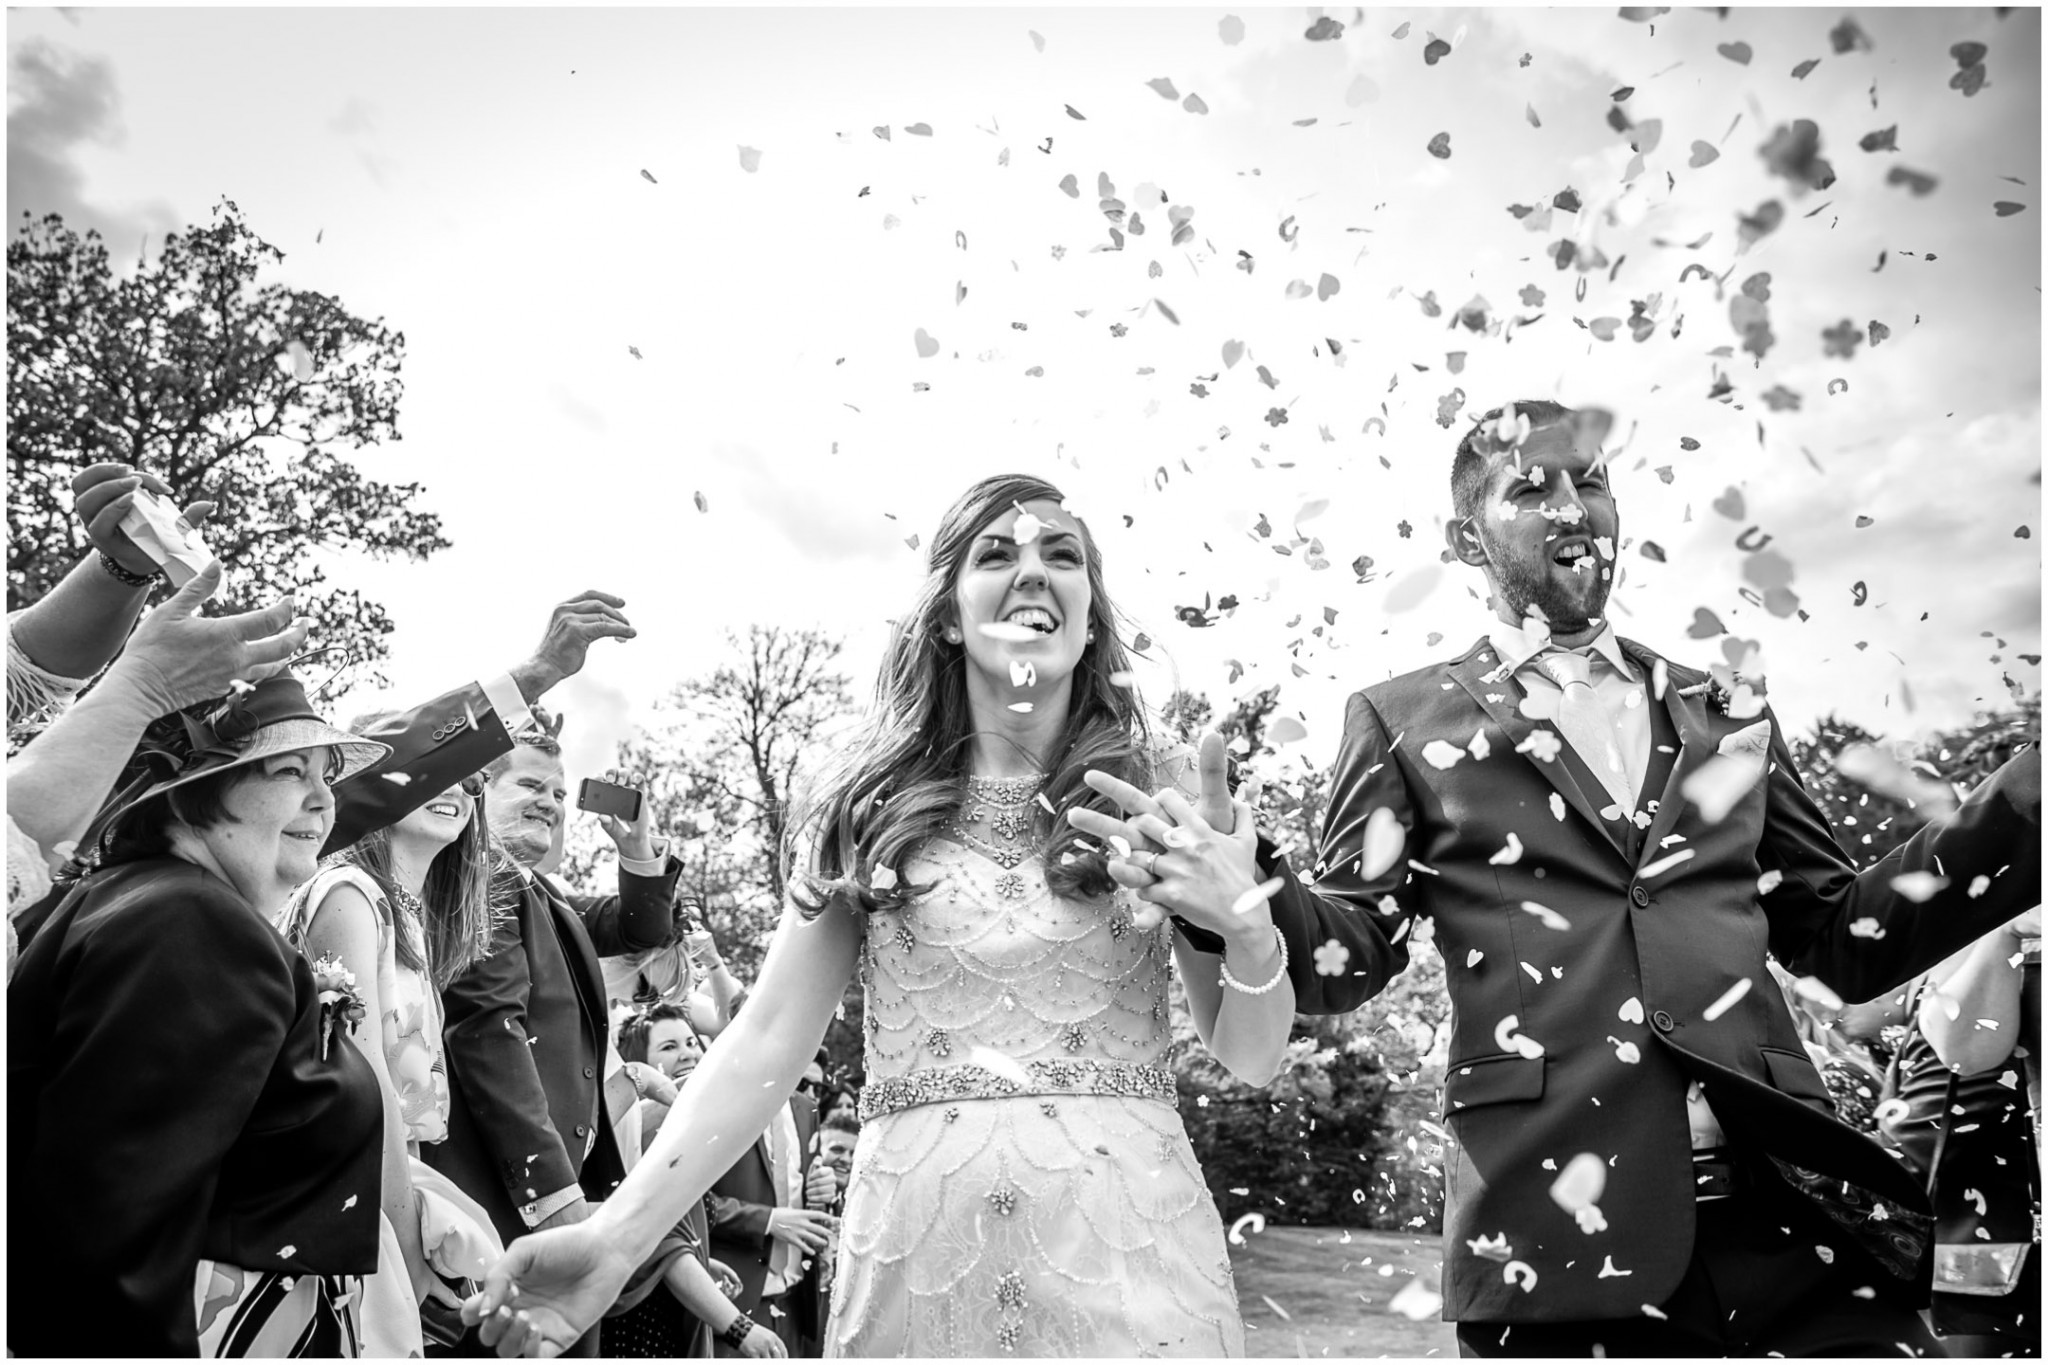 Wasing Park Wedding Photography Confetti black and white